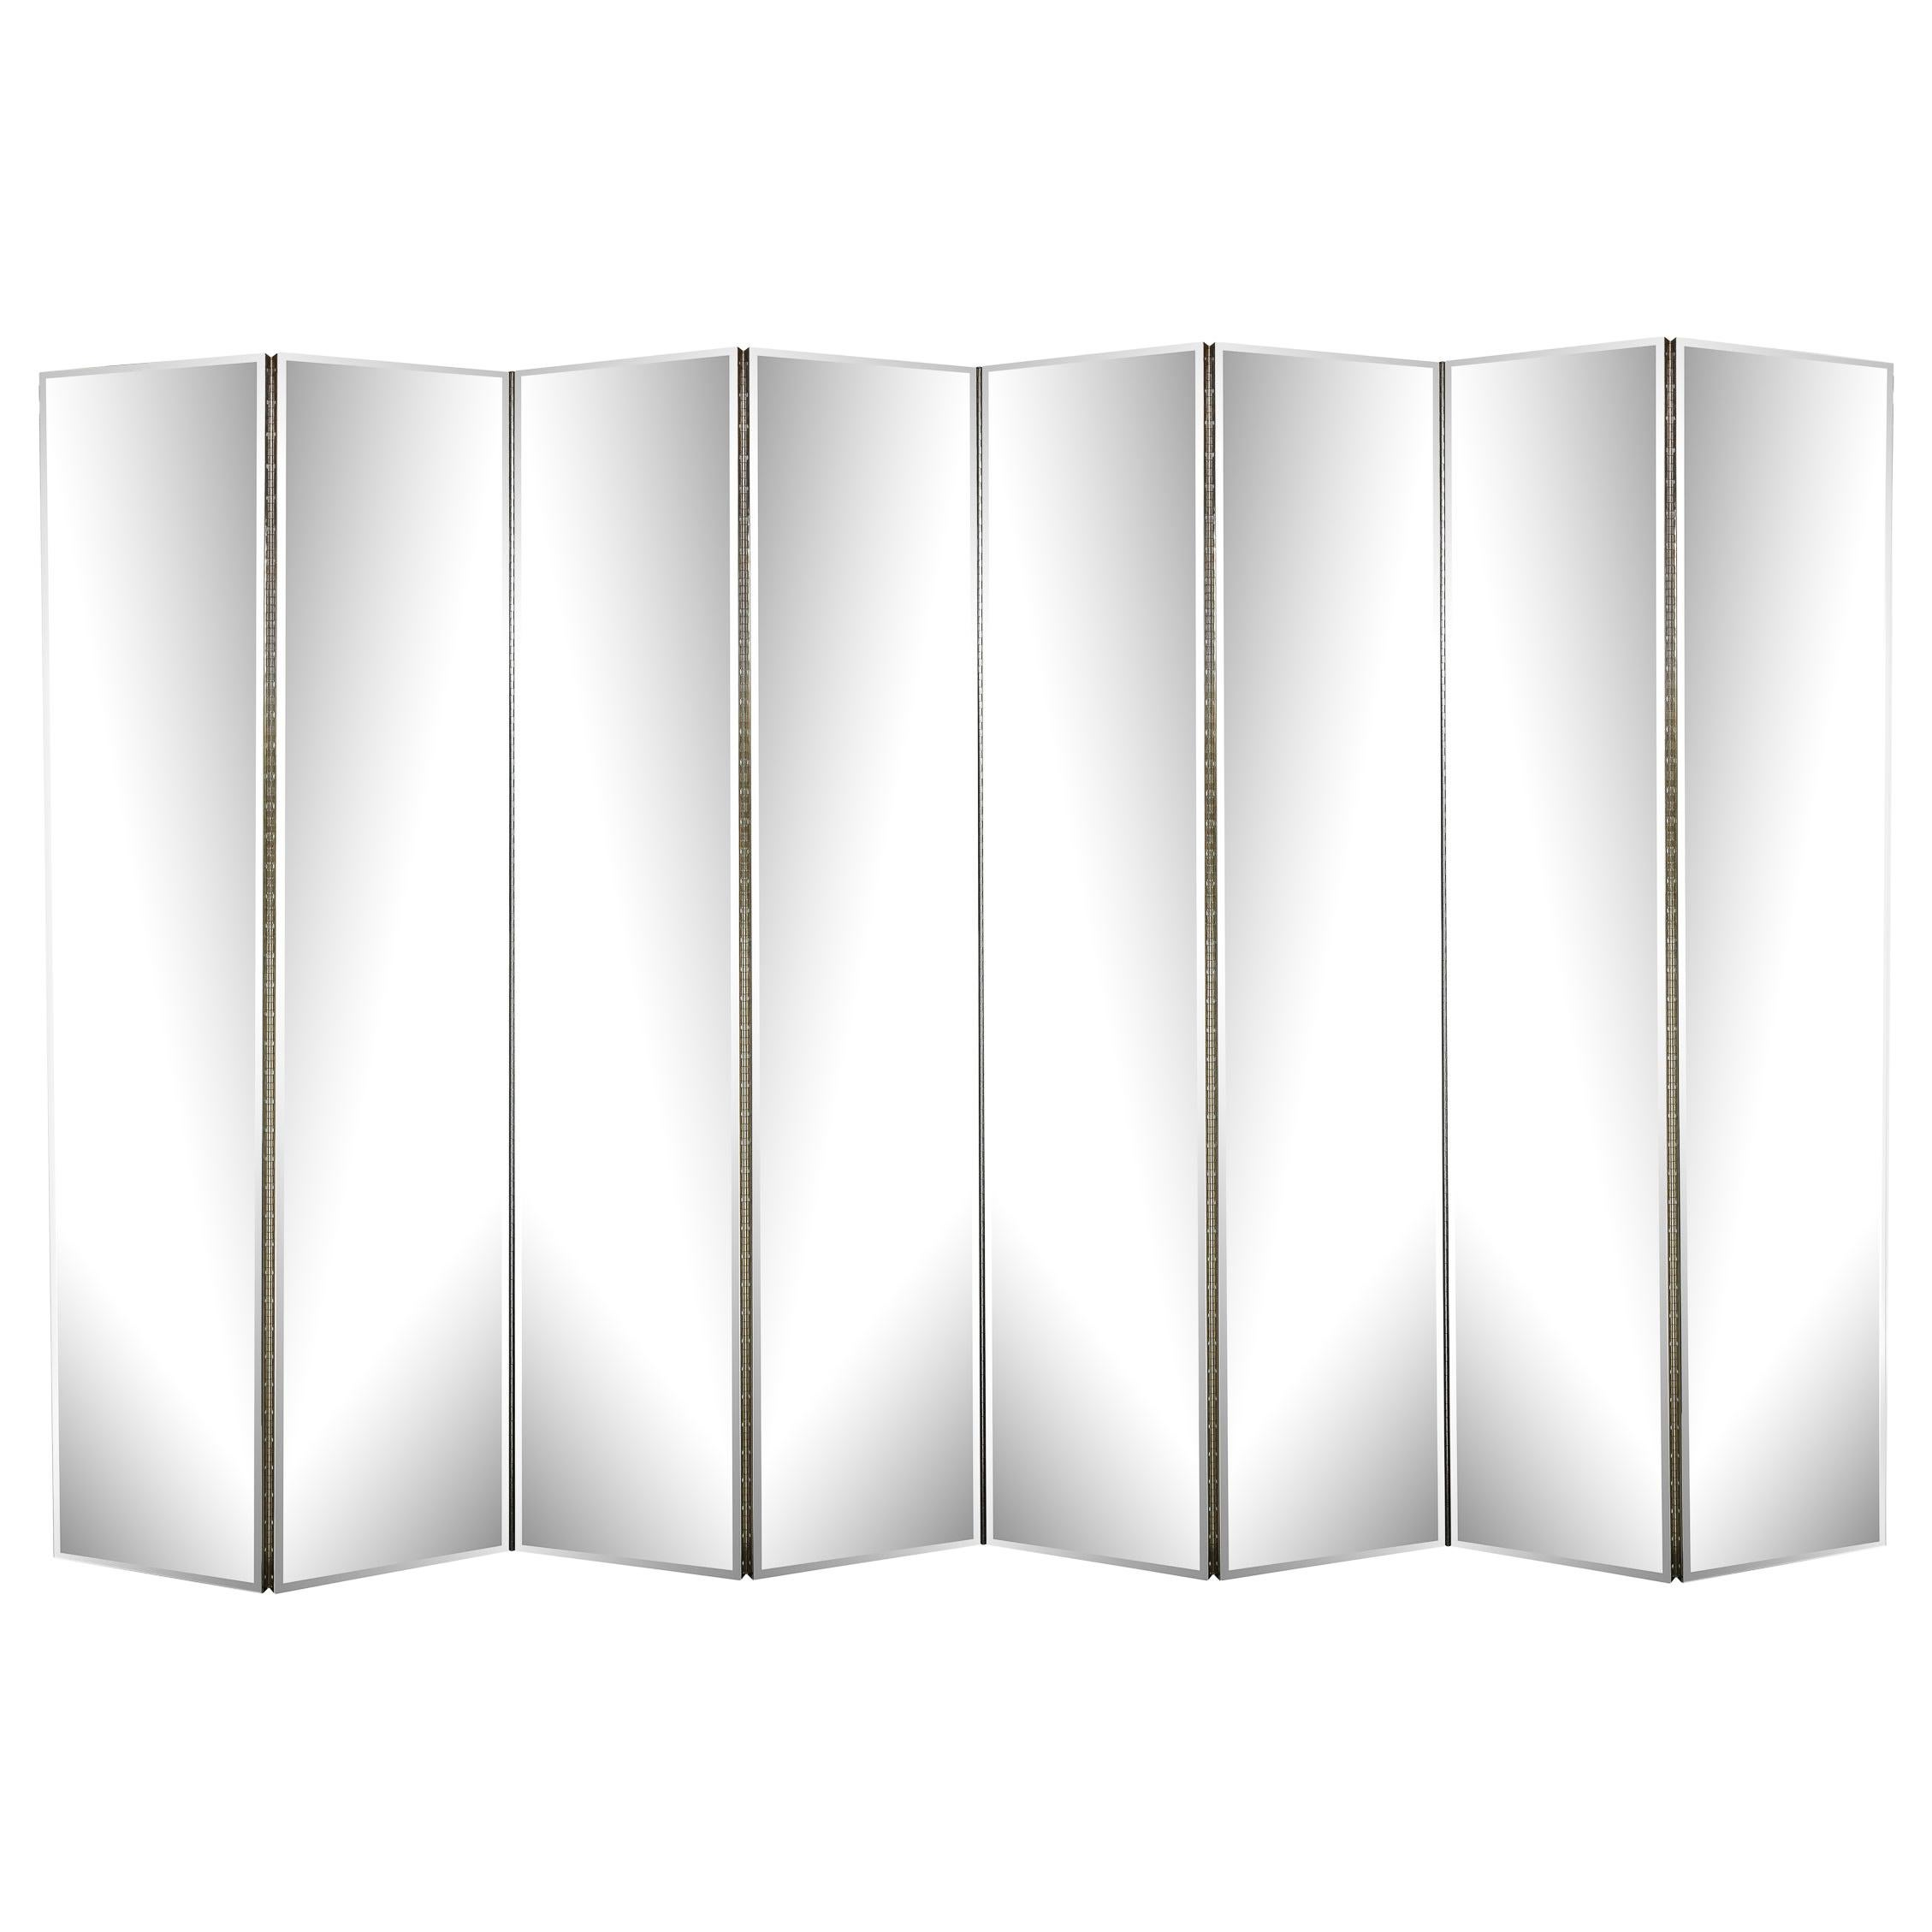 Modernist Monumental Eight Panel Mirrored Screen with Bronze Hued Back